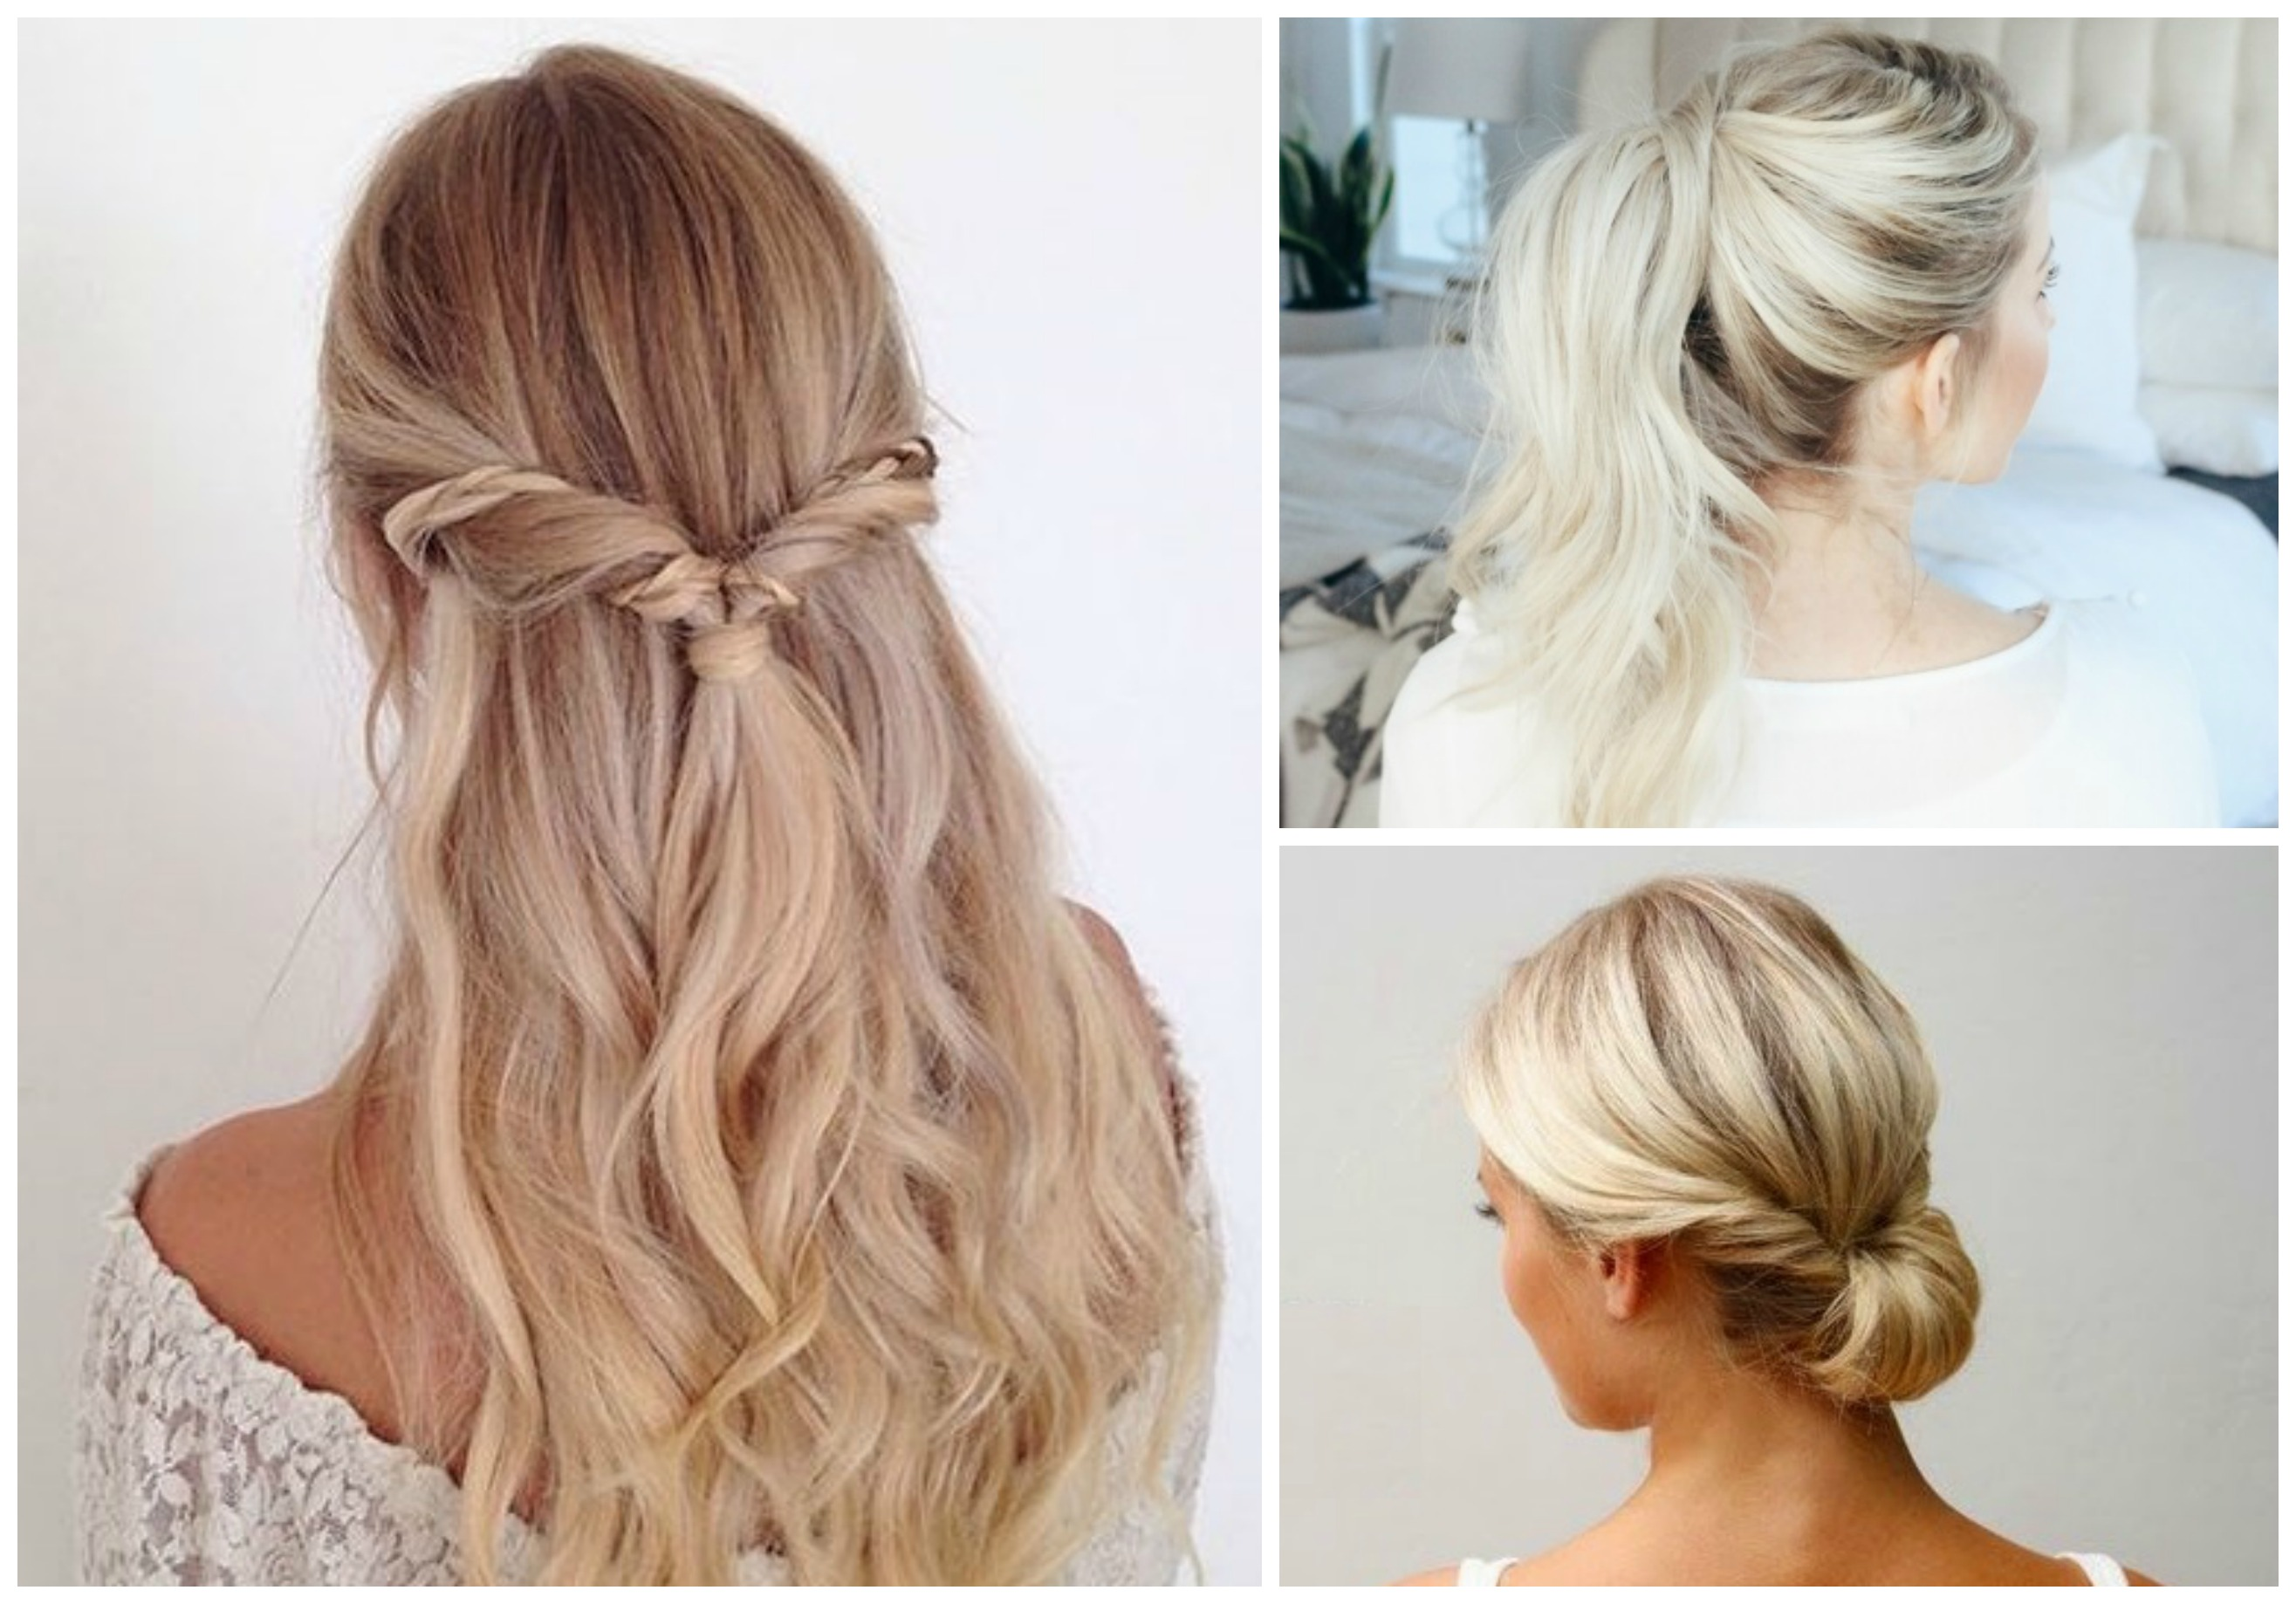 12 Super Easy Hairstyles for Everyday Life